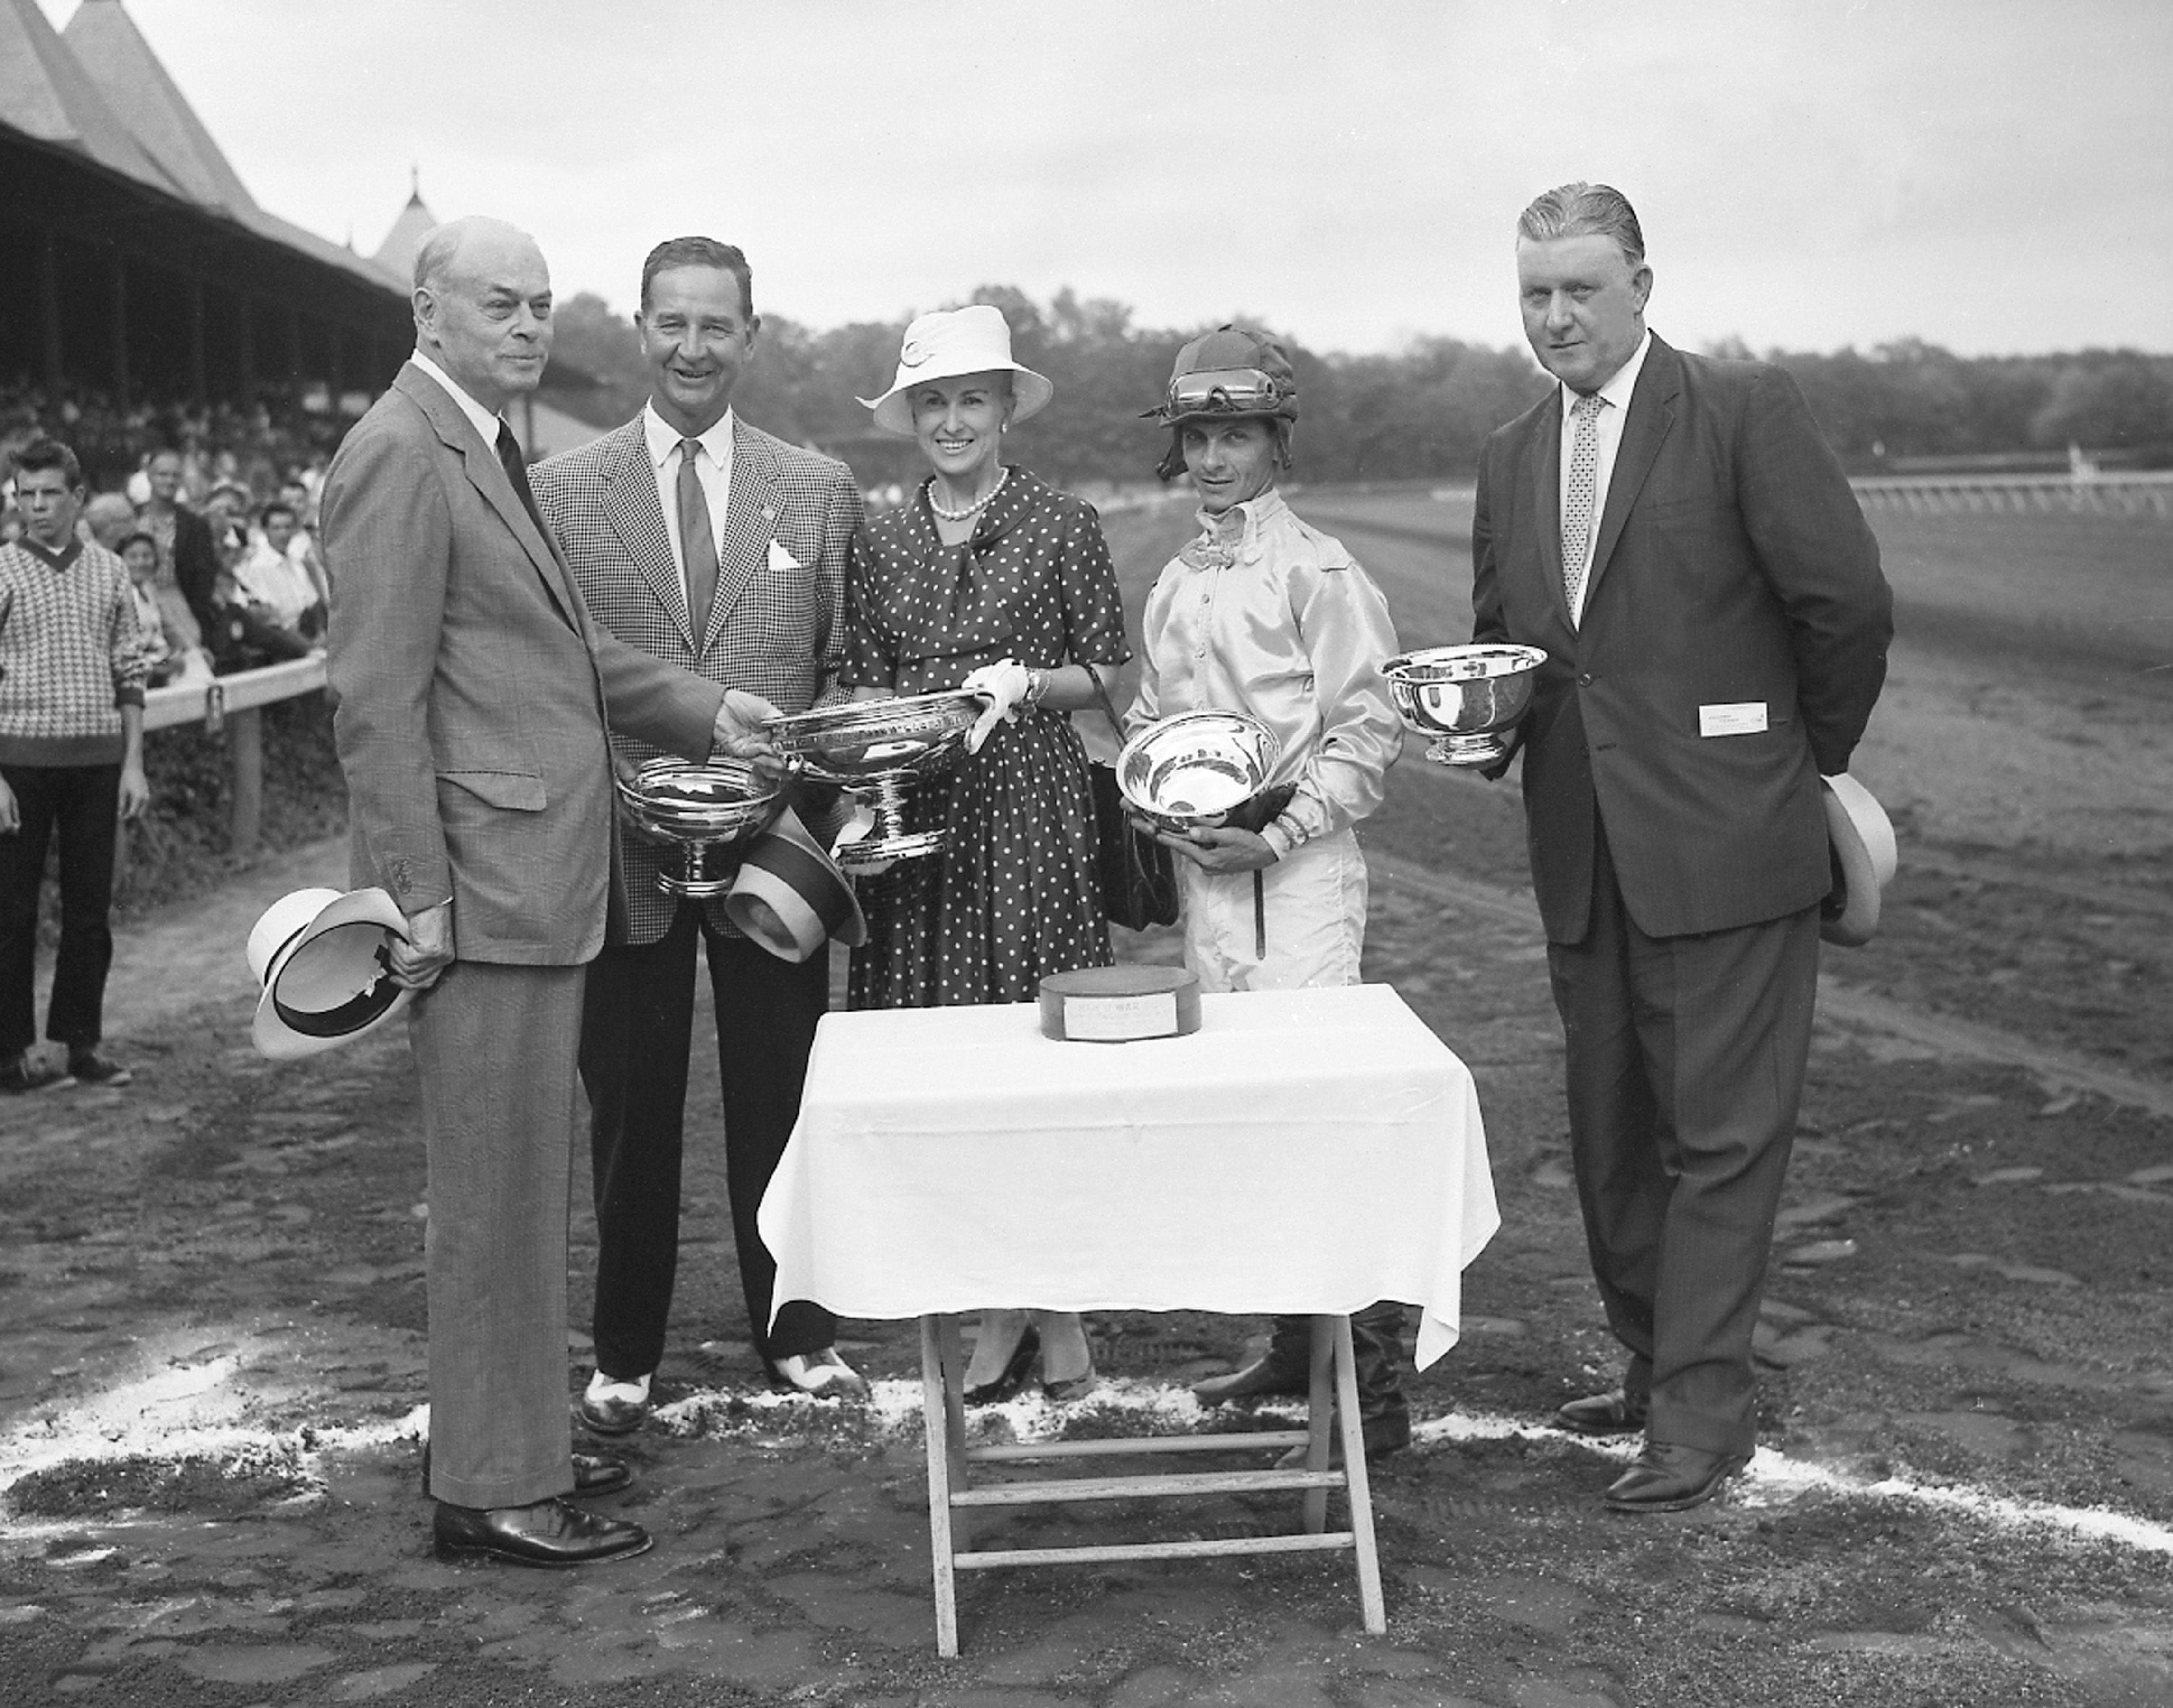 Walter M. Jeffords, Sr. presents the winning connections of Tompion - owners Mr. and Mrs. C. V. Whitney, jockey Bill Hartack, and trainer JJ Greely -  with the 1960 Travers Stakes trophy at Saratoga (Keeneland Library Morgan Collection)